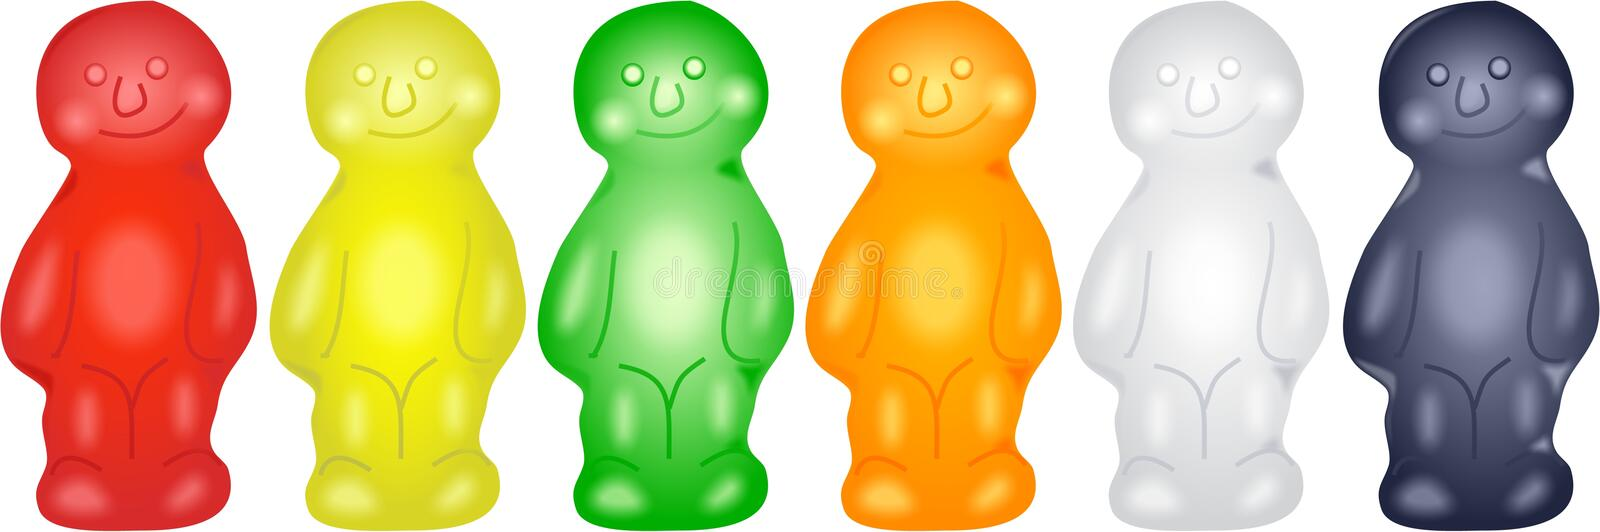 Jelly Babies vector illustration